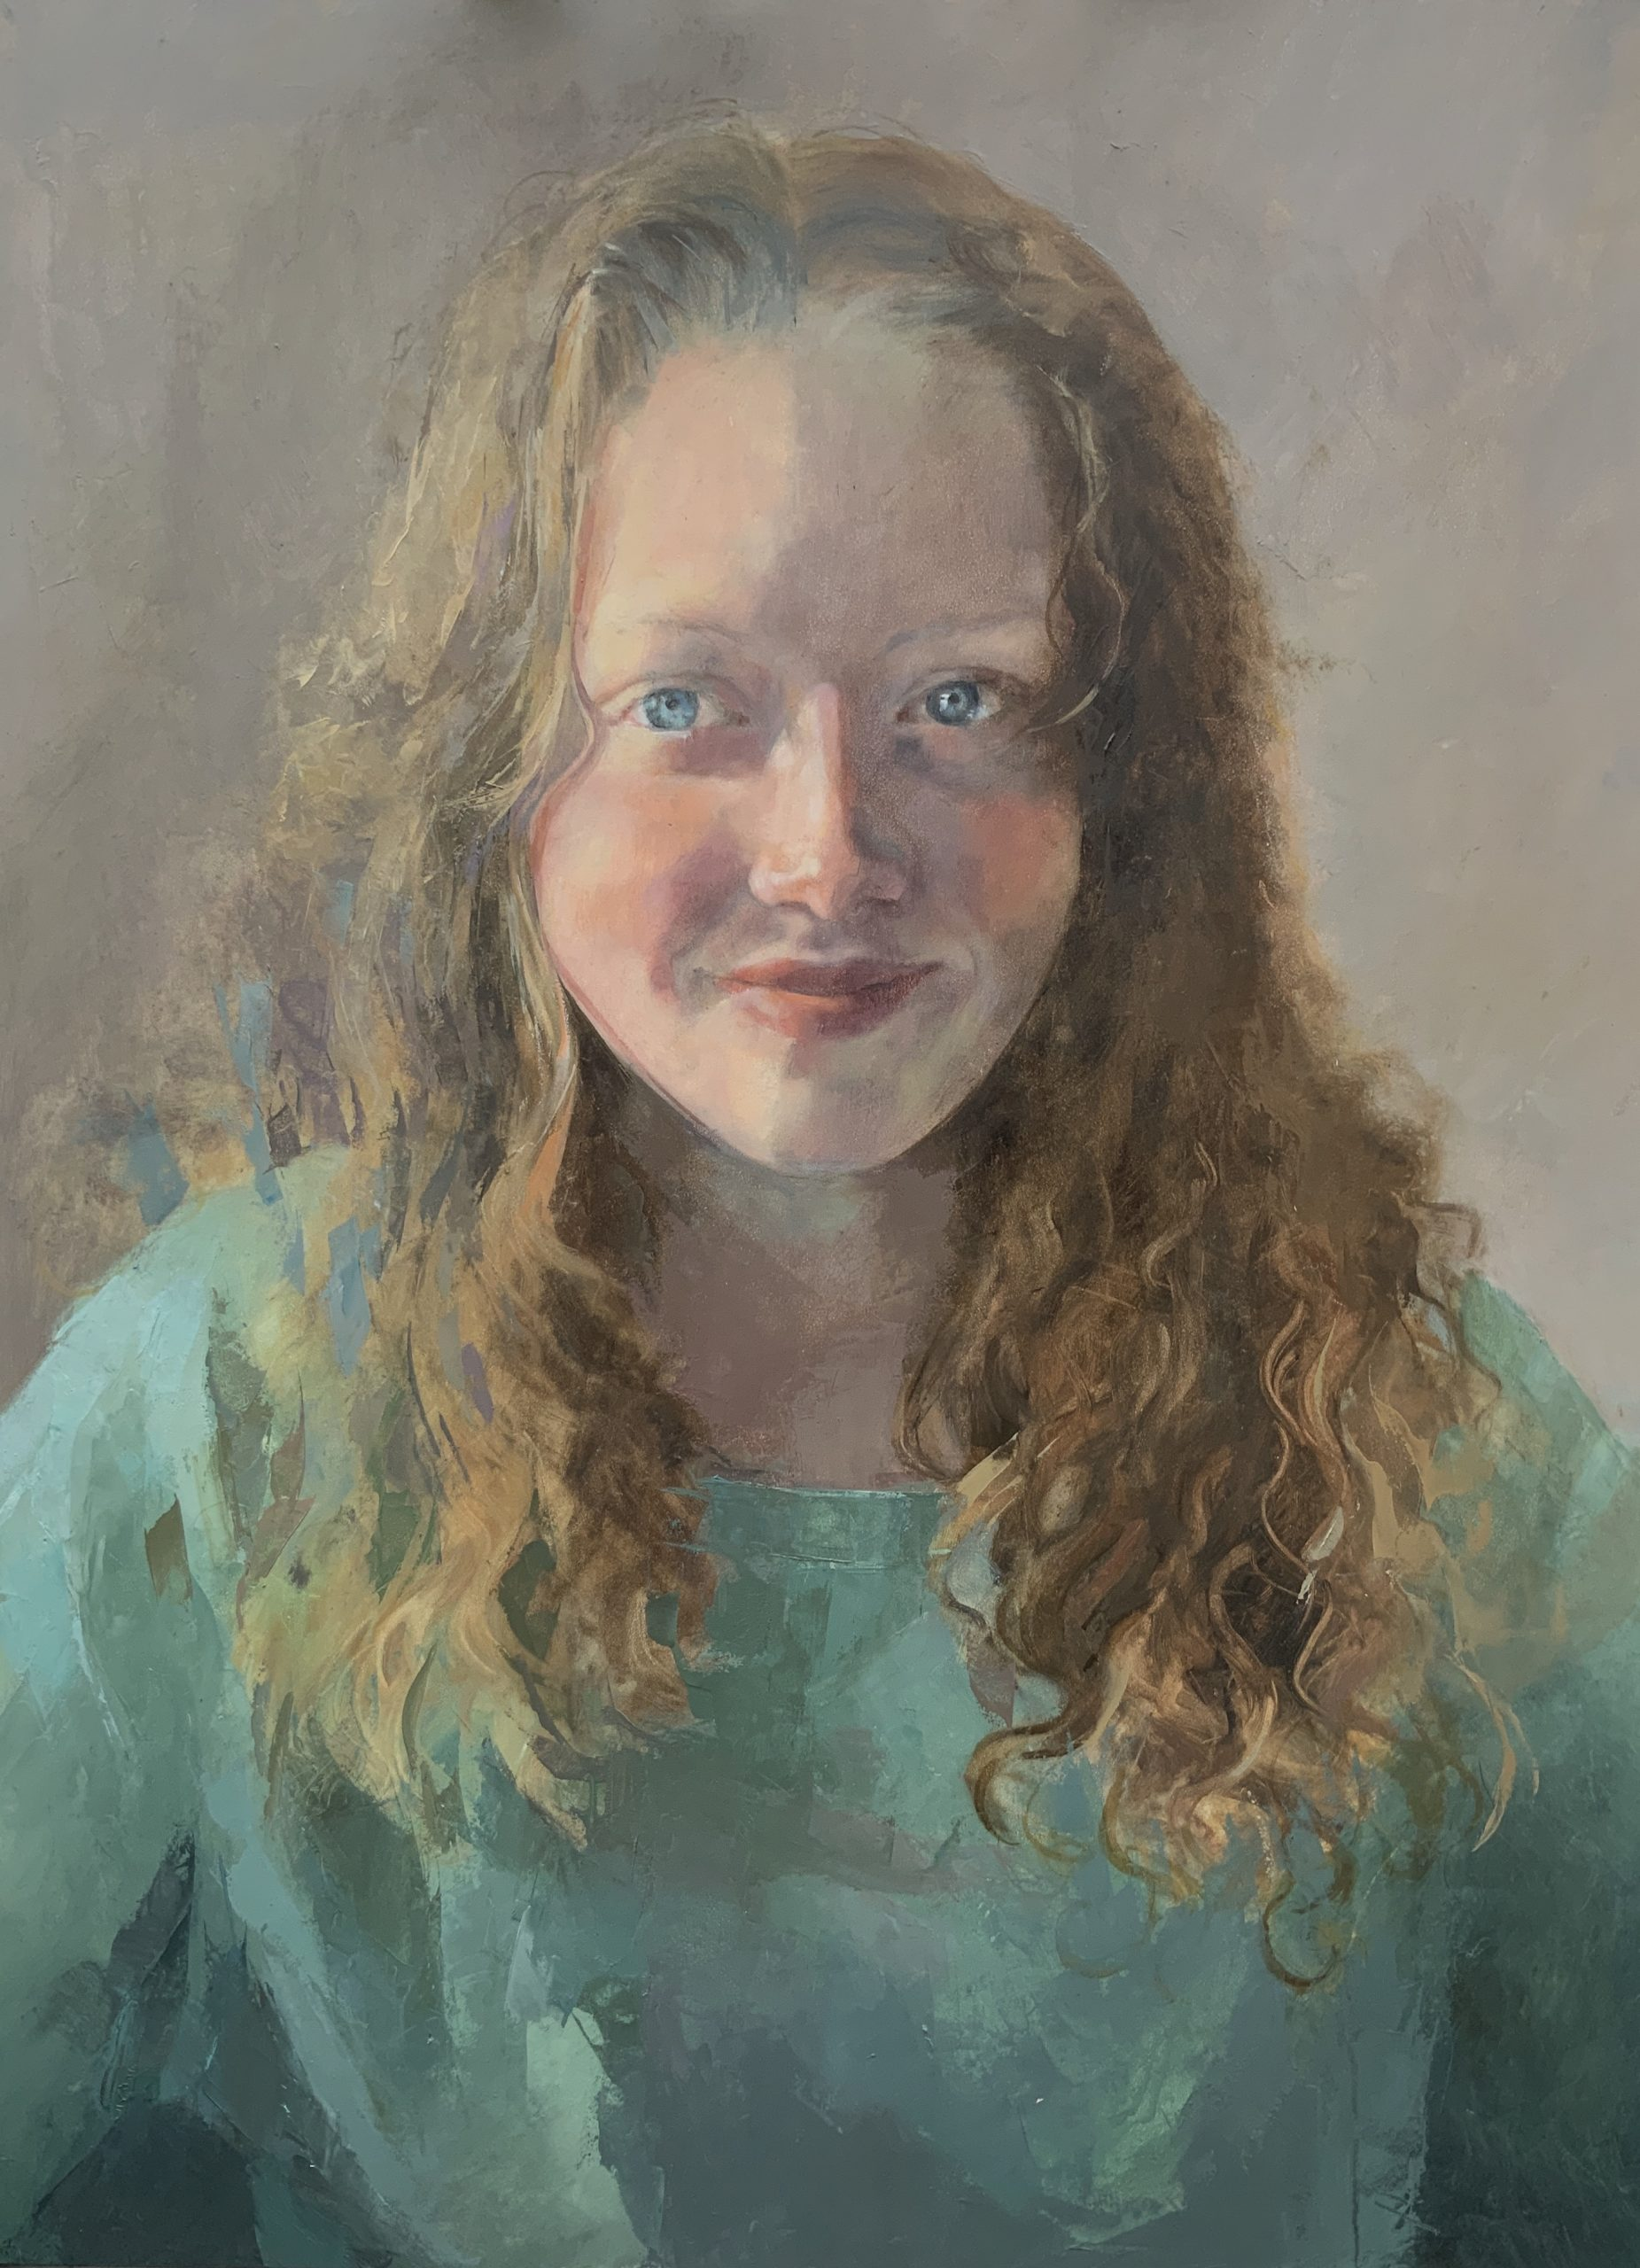 Oil portrait painting commission